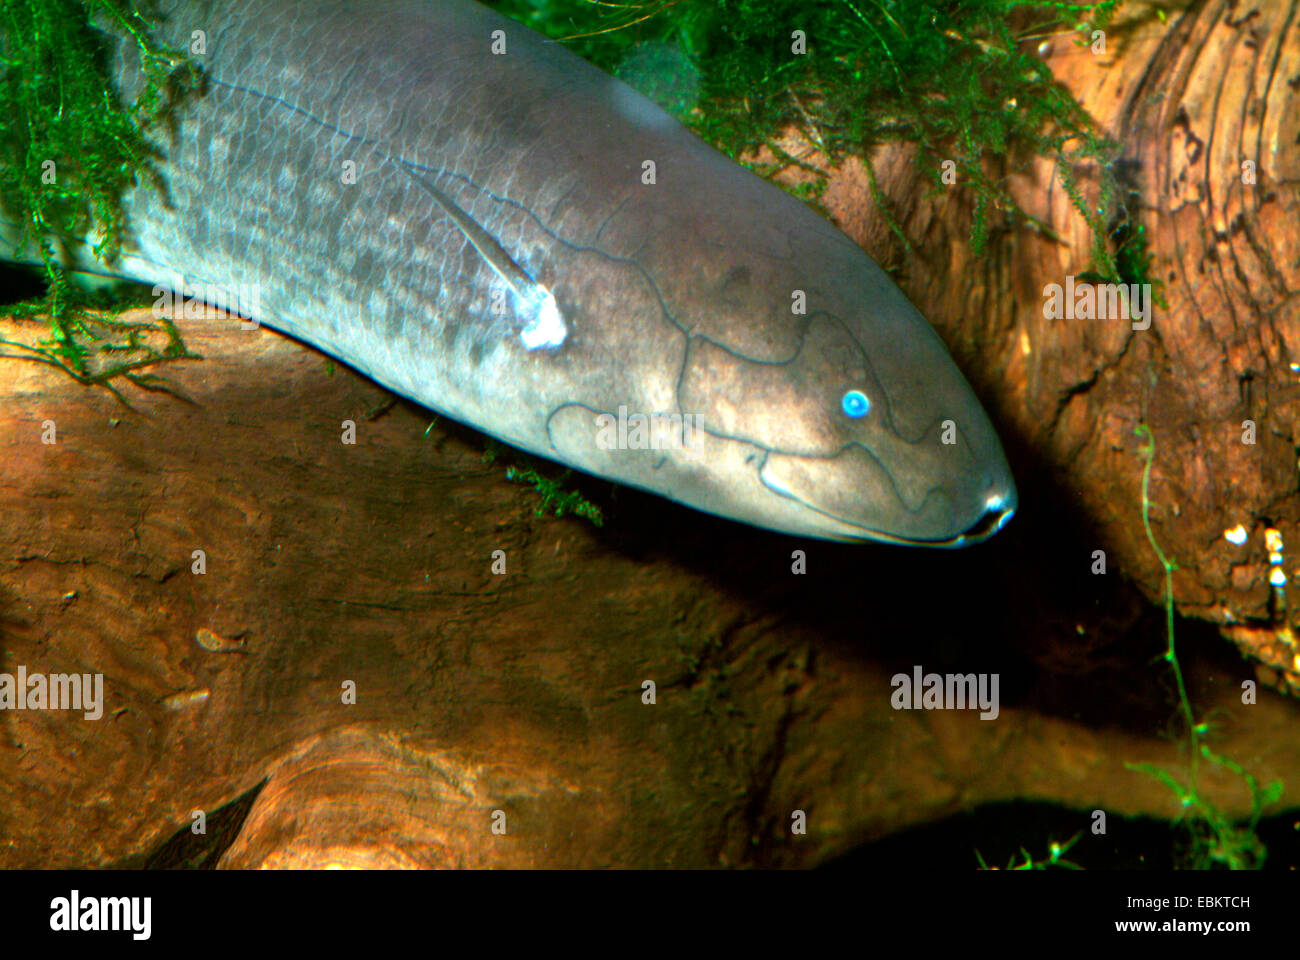 Spotted African lungfish, Doloi Lungfish (Protopterus dolloi), half length portrait - Stock Image